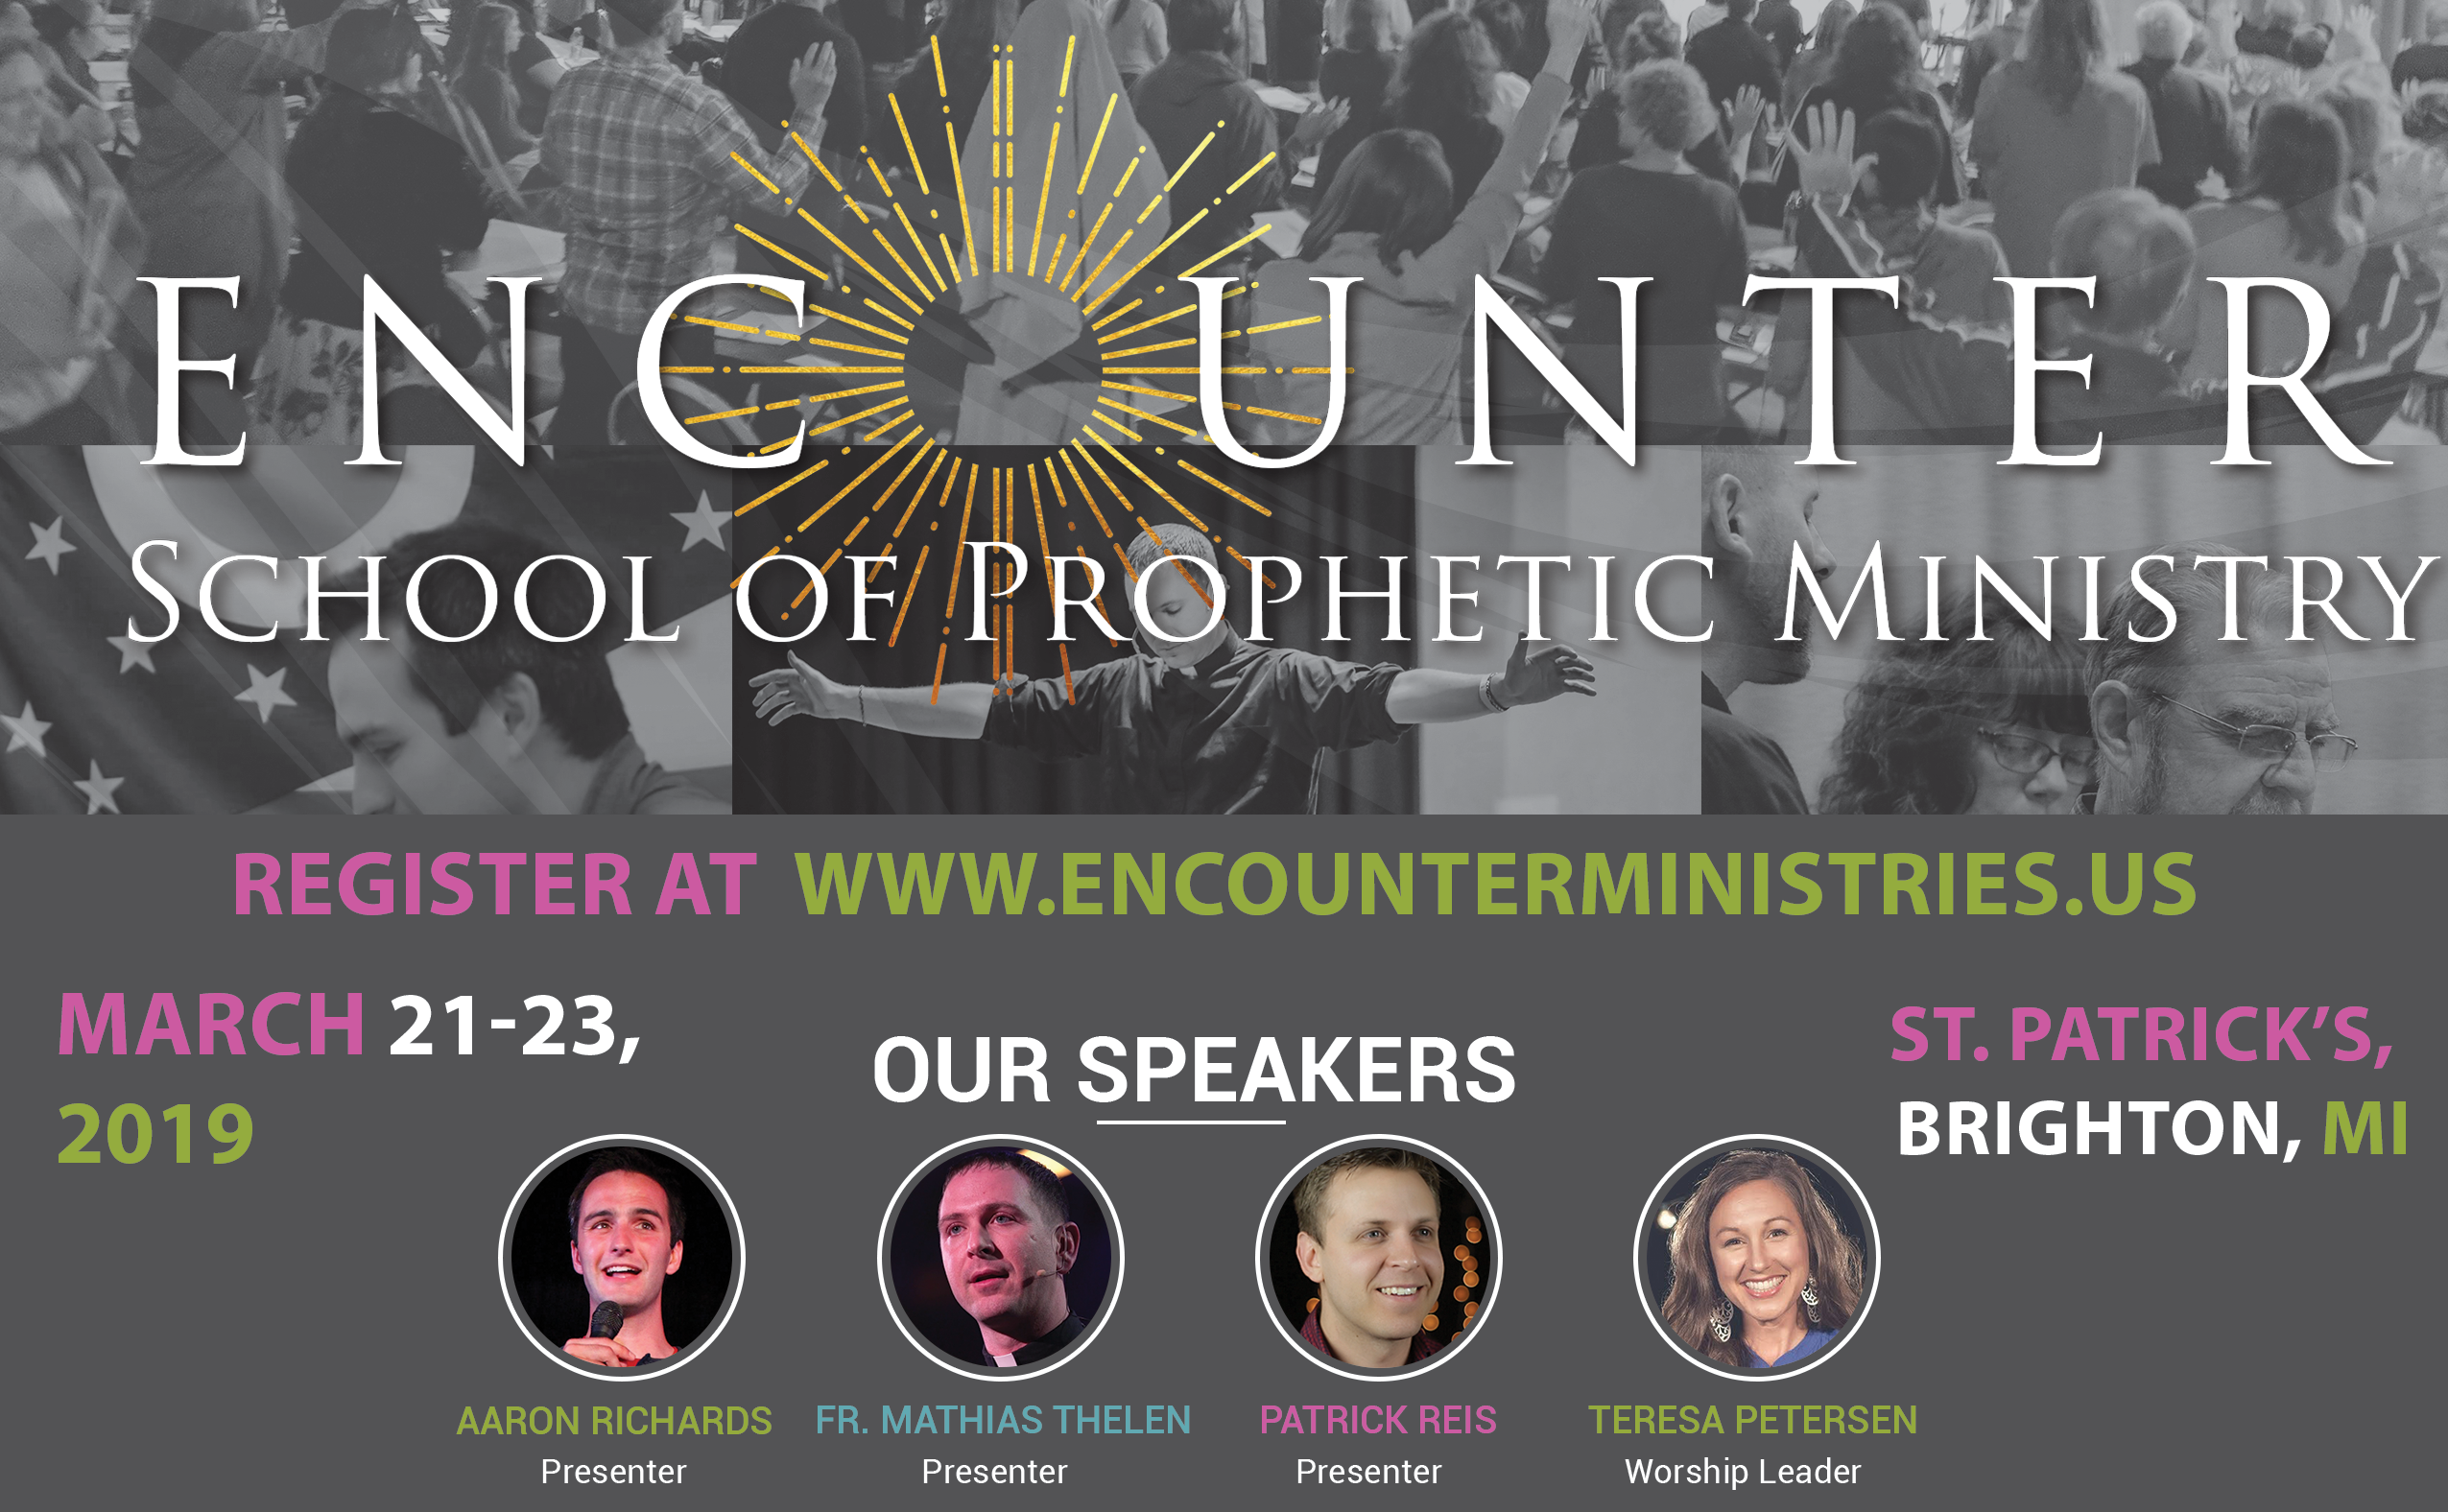 Encounter School of Prophetic Ministry